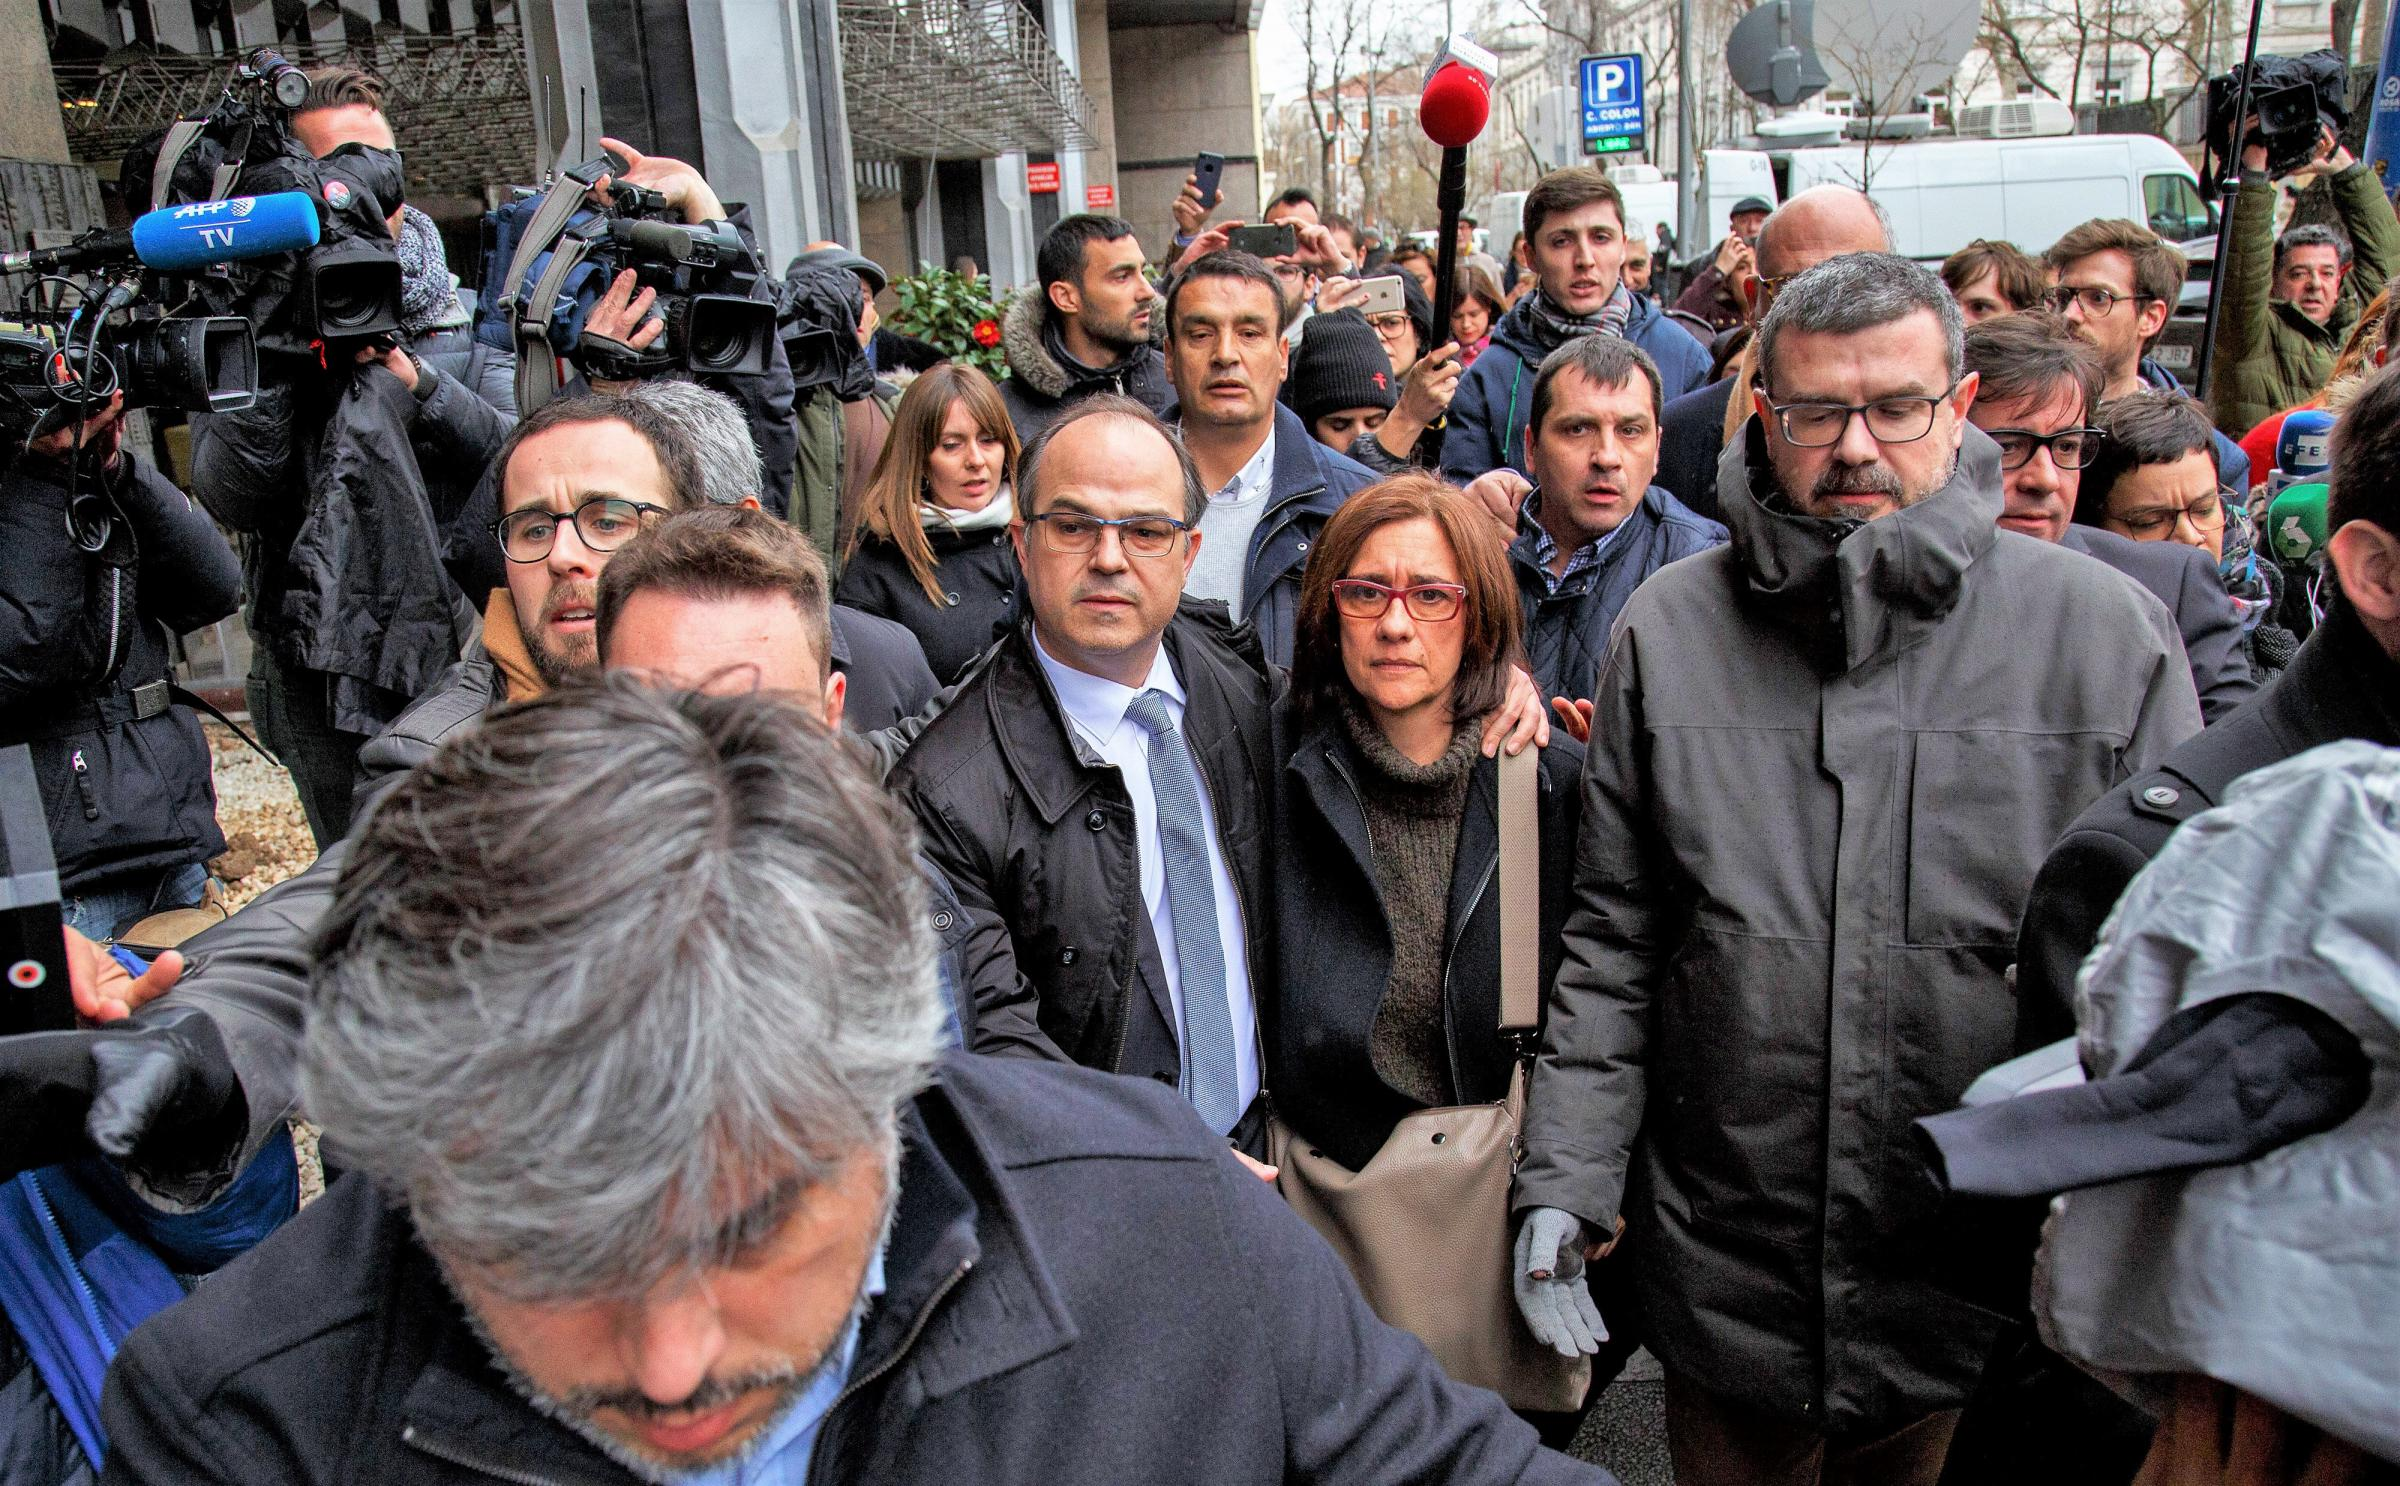 Catalan politician Jordi Turull, centre, will be detained without bail